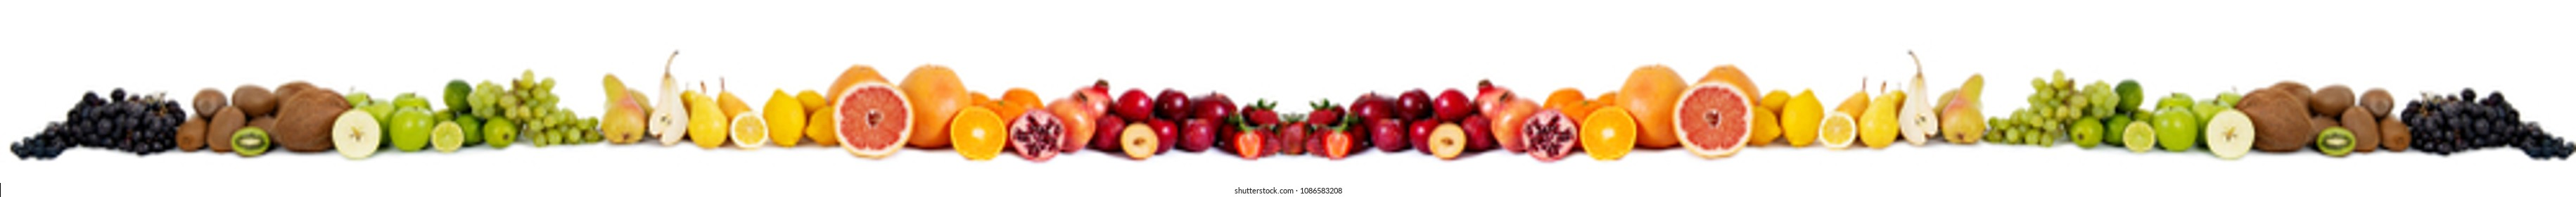 Food fruit banner isolated on white